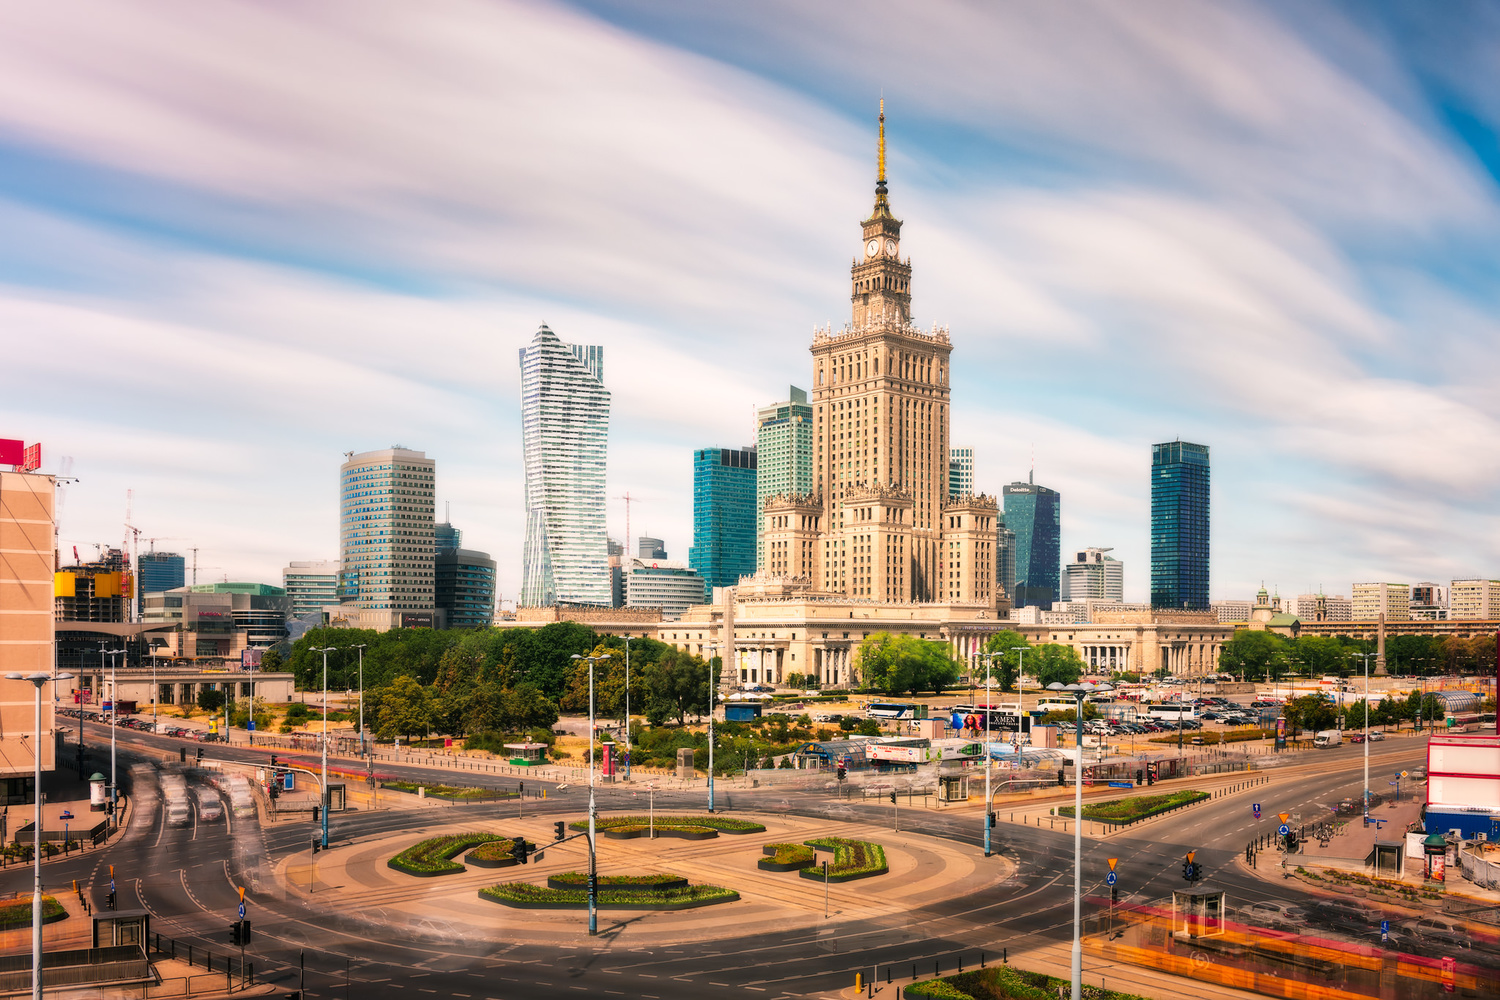 Palace of Culture and Science | Warsaw, Poland by Nico Trinkhaus